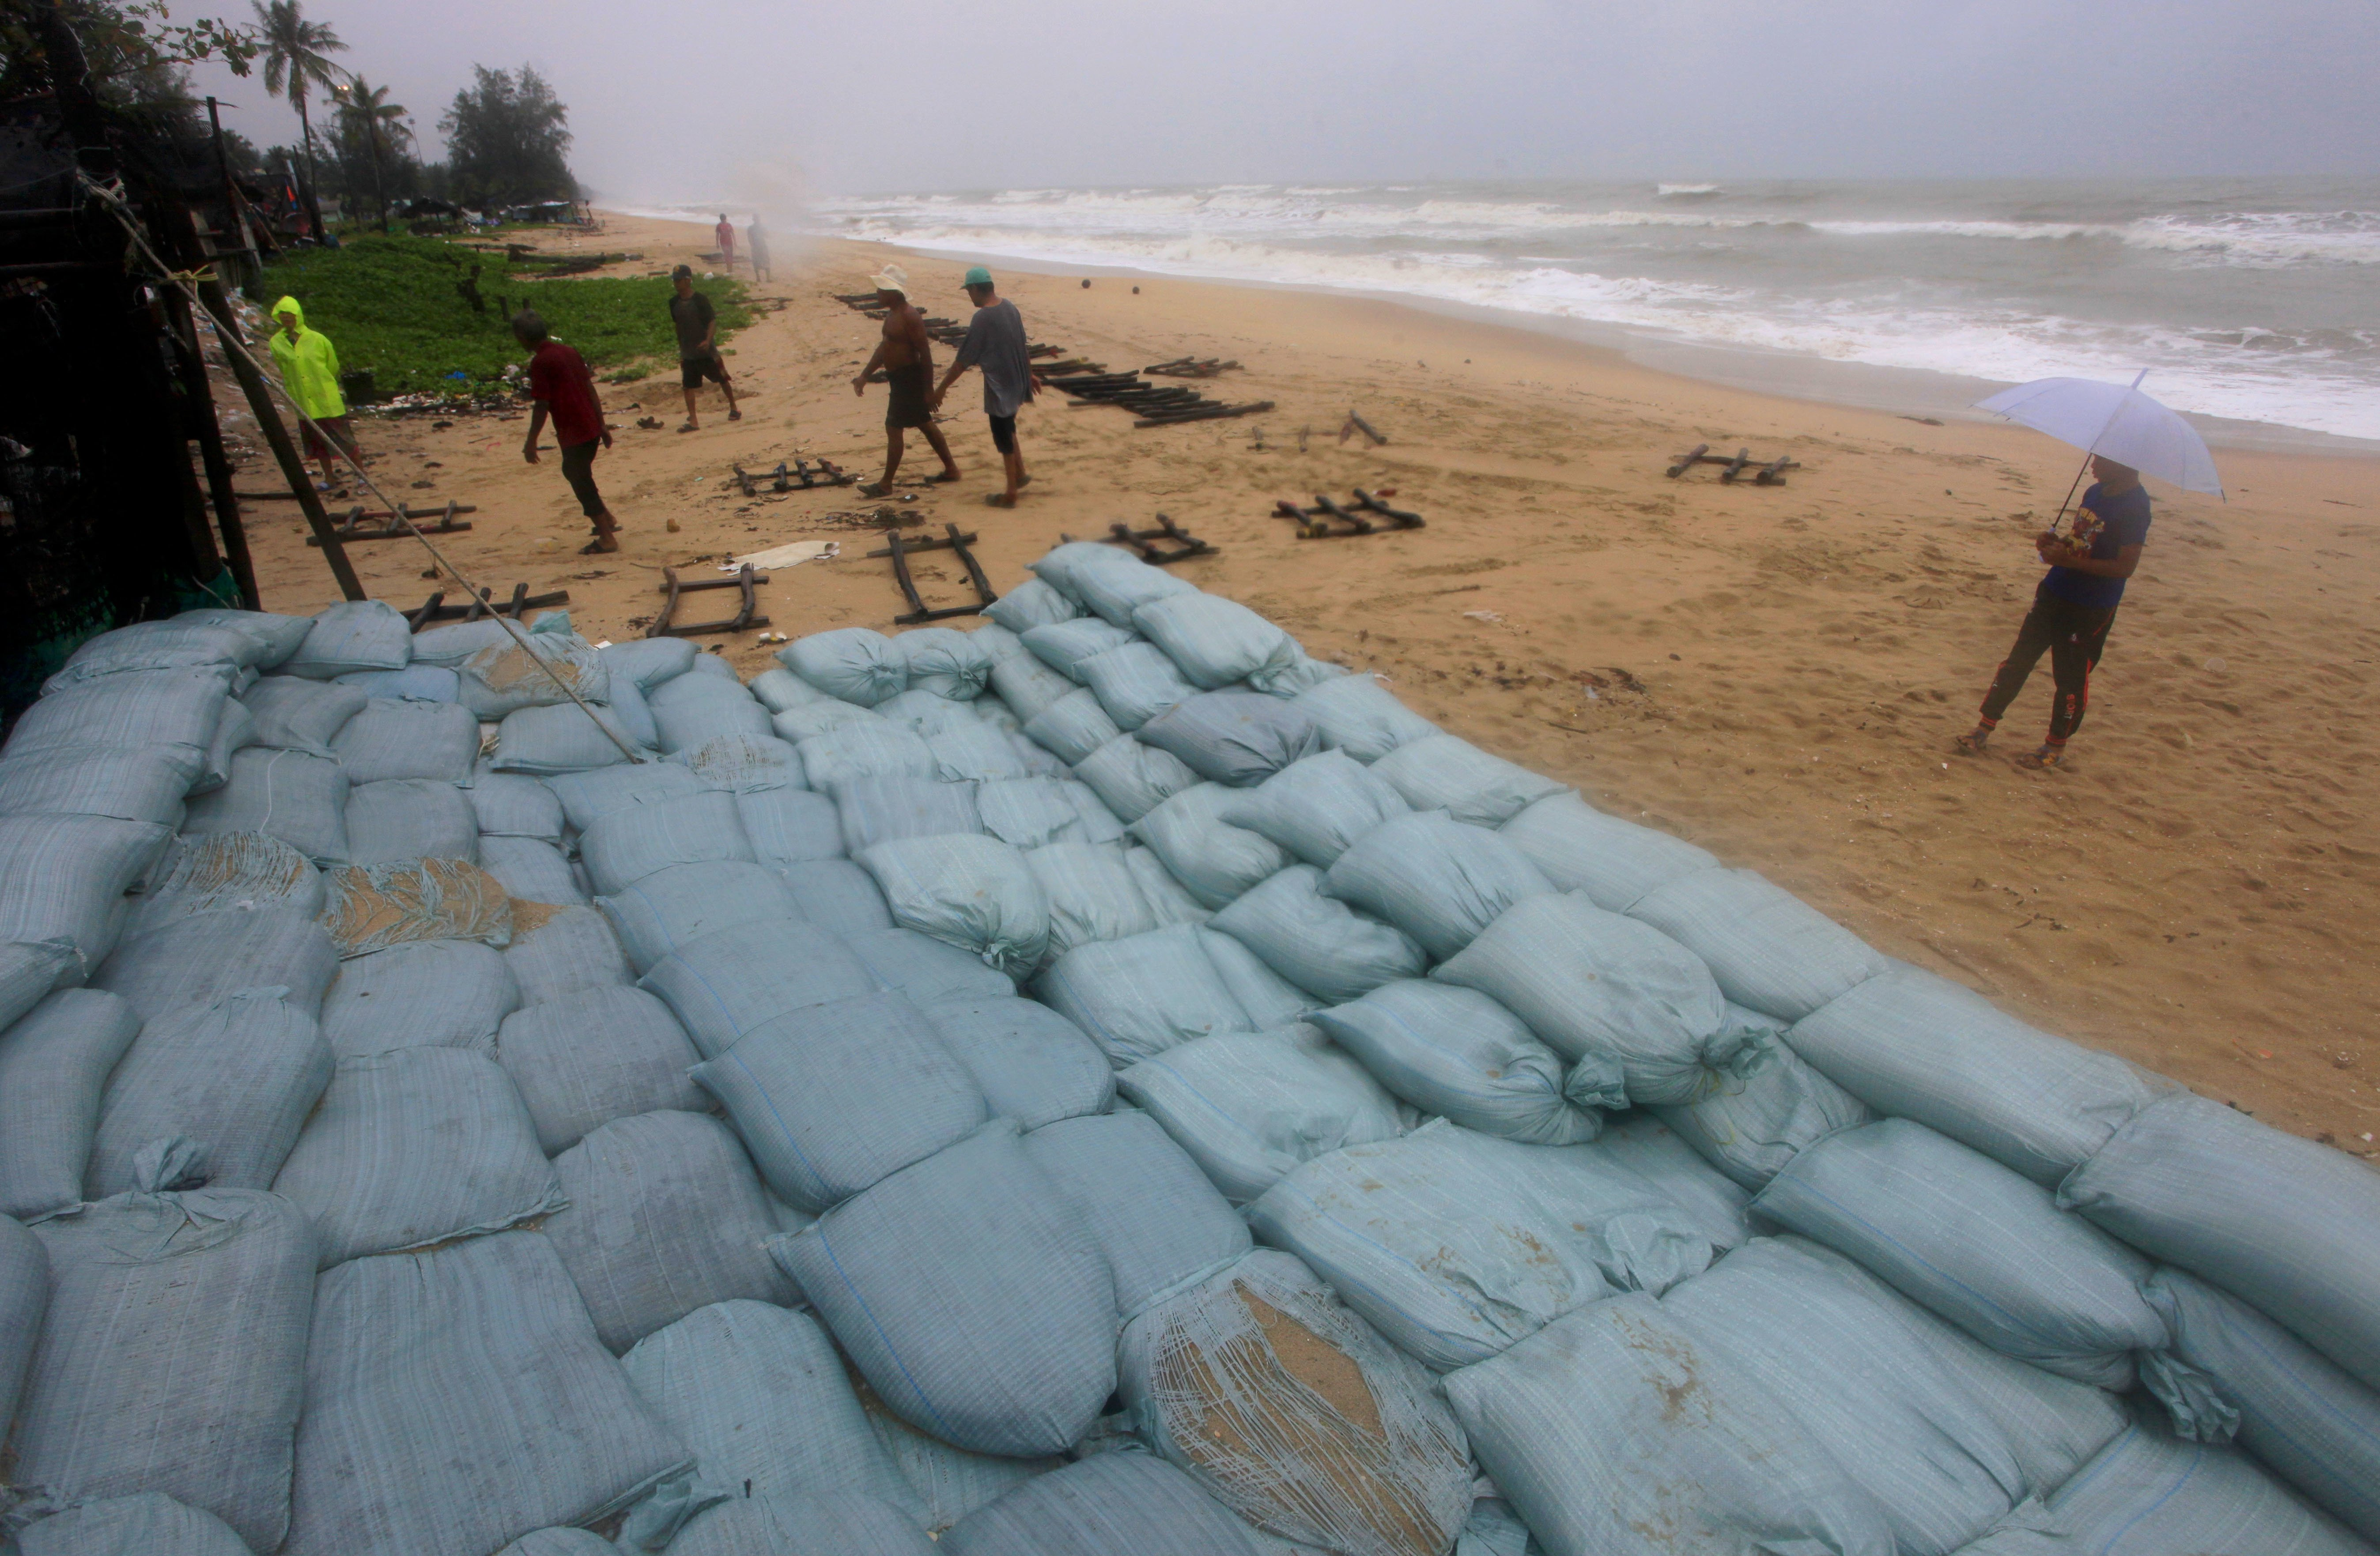 thai-beach-resorts-braced-for-tropical-storm-oxford-mail Thai beach resorts braced for tropical storm - Oxford Mail